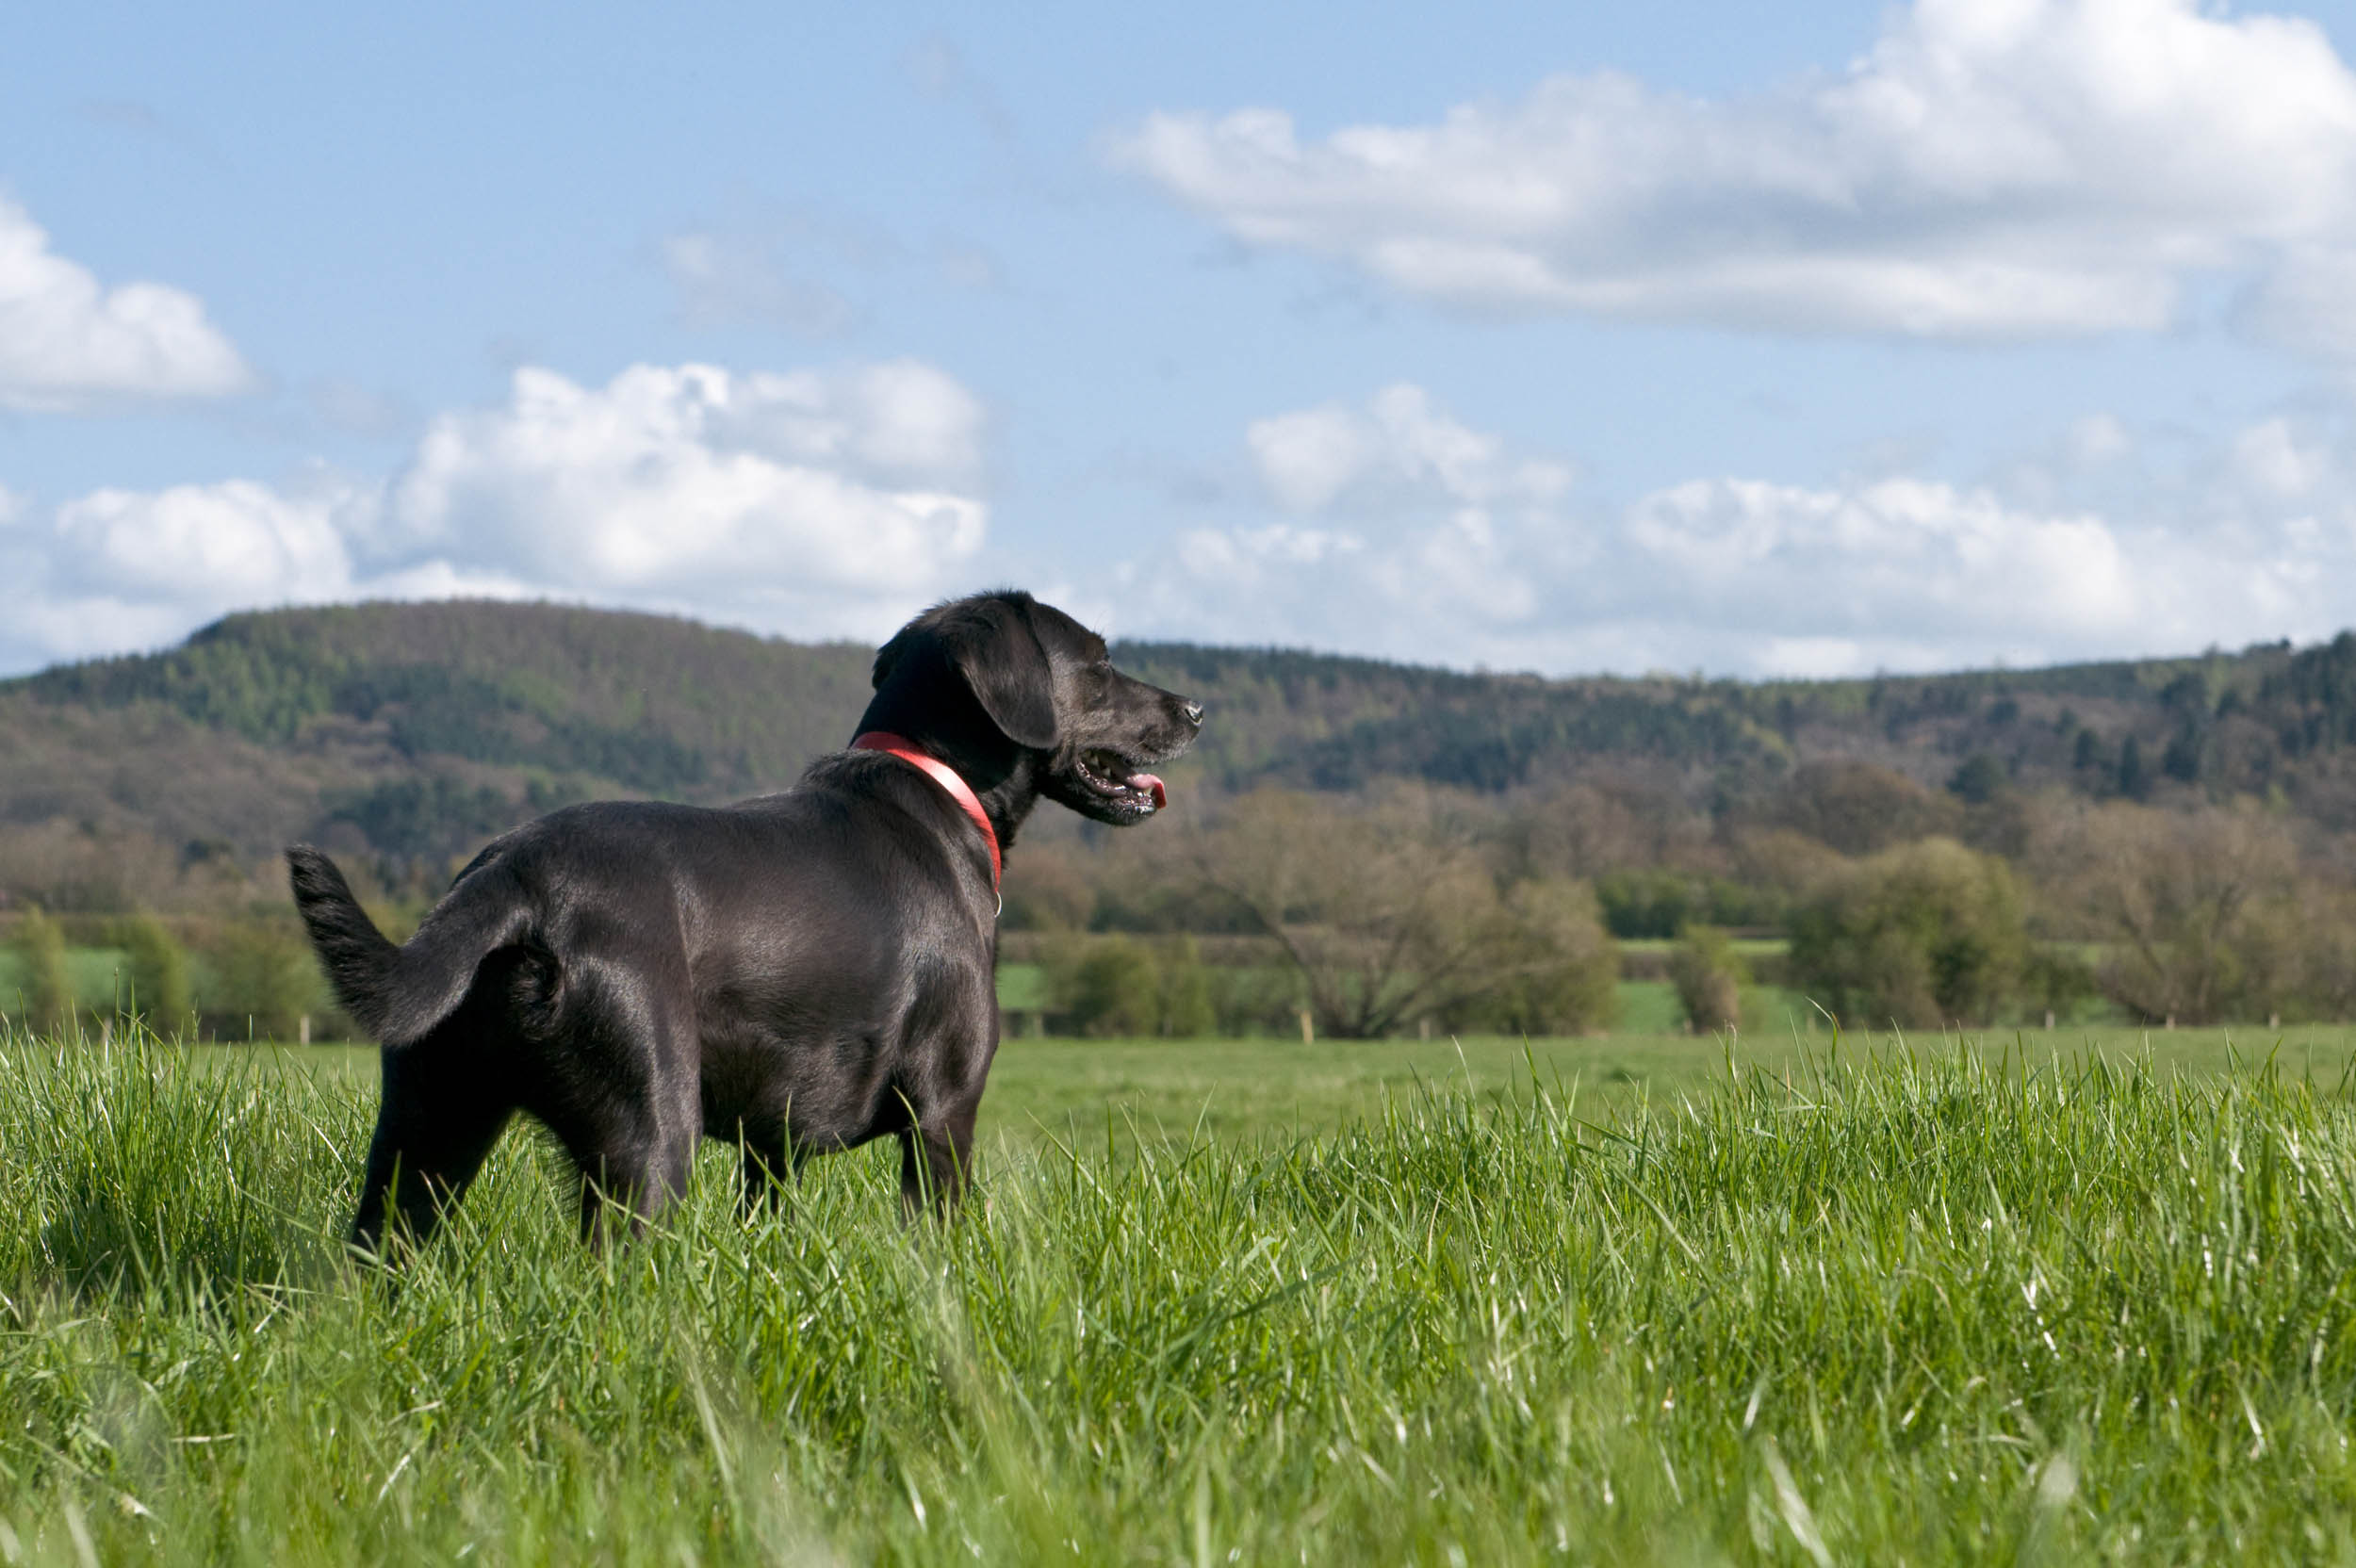 Bring your four legged friend   Well behaved dogs welcome    Explore